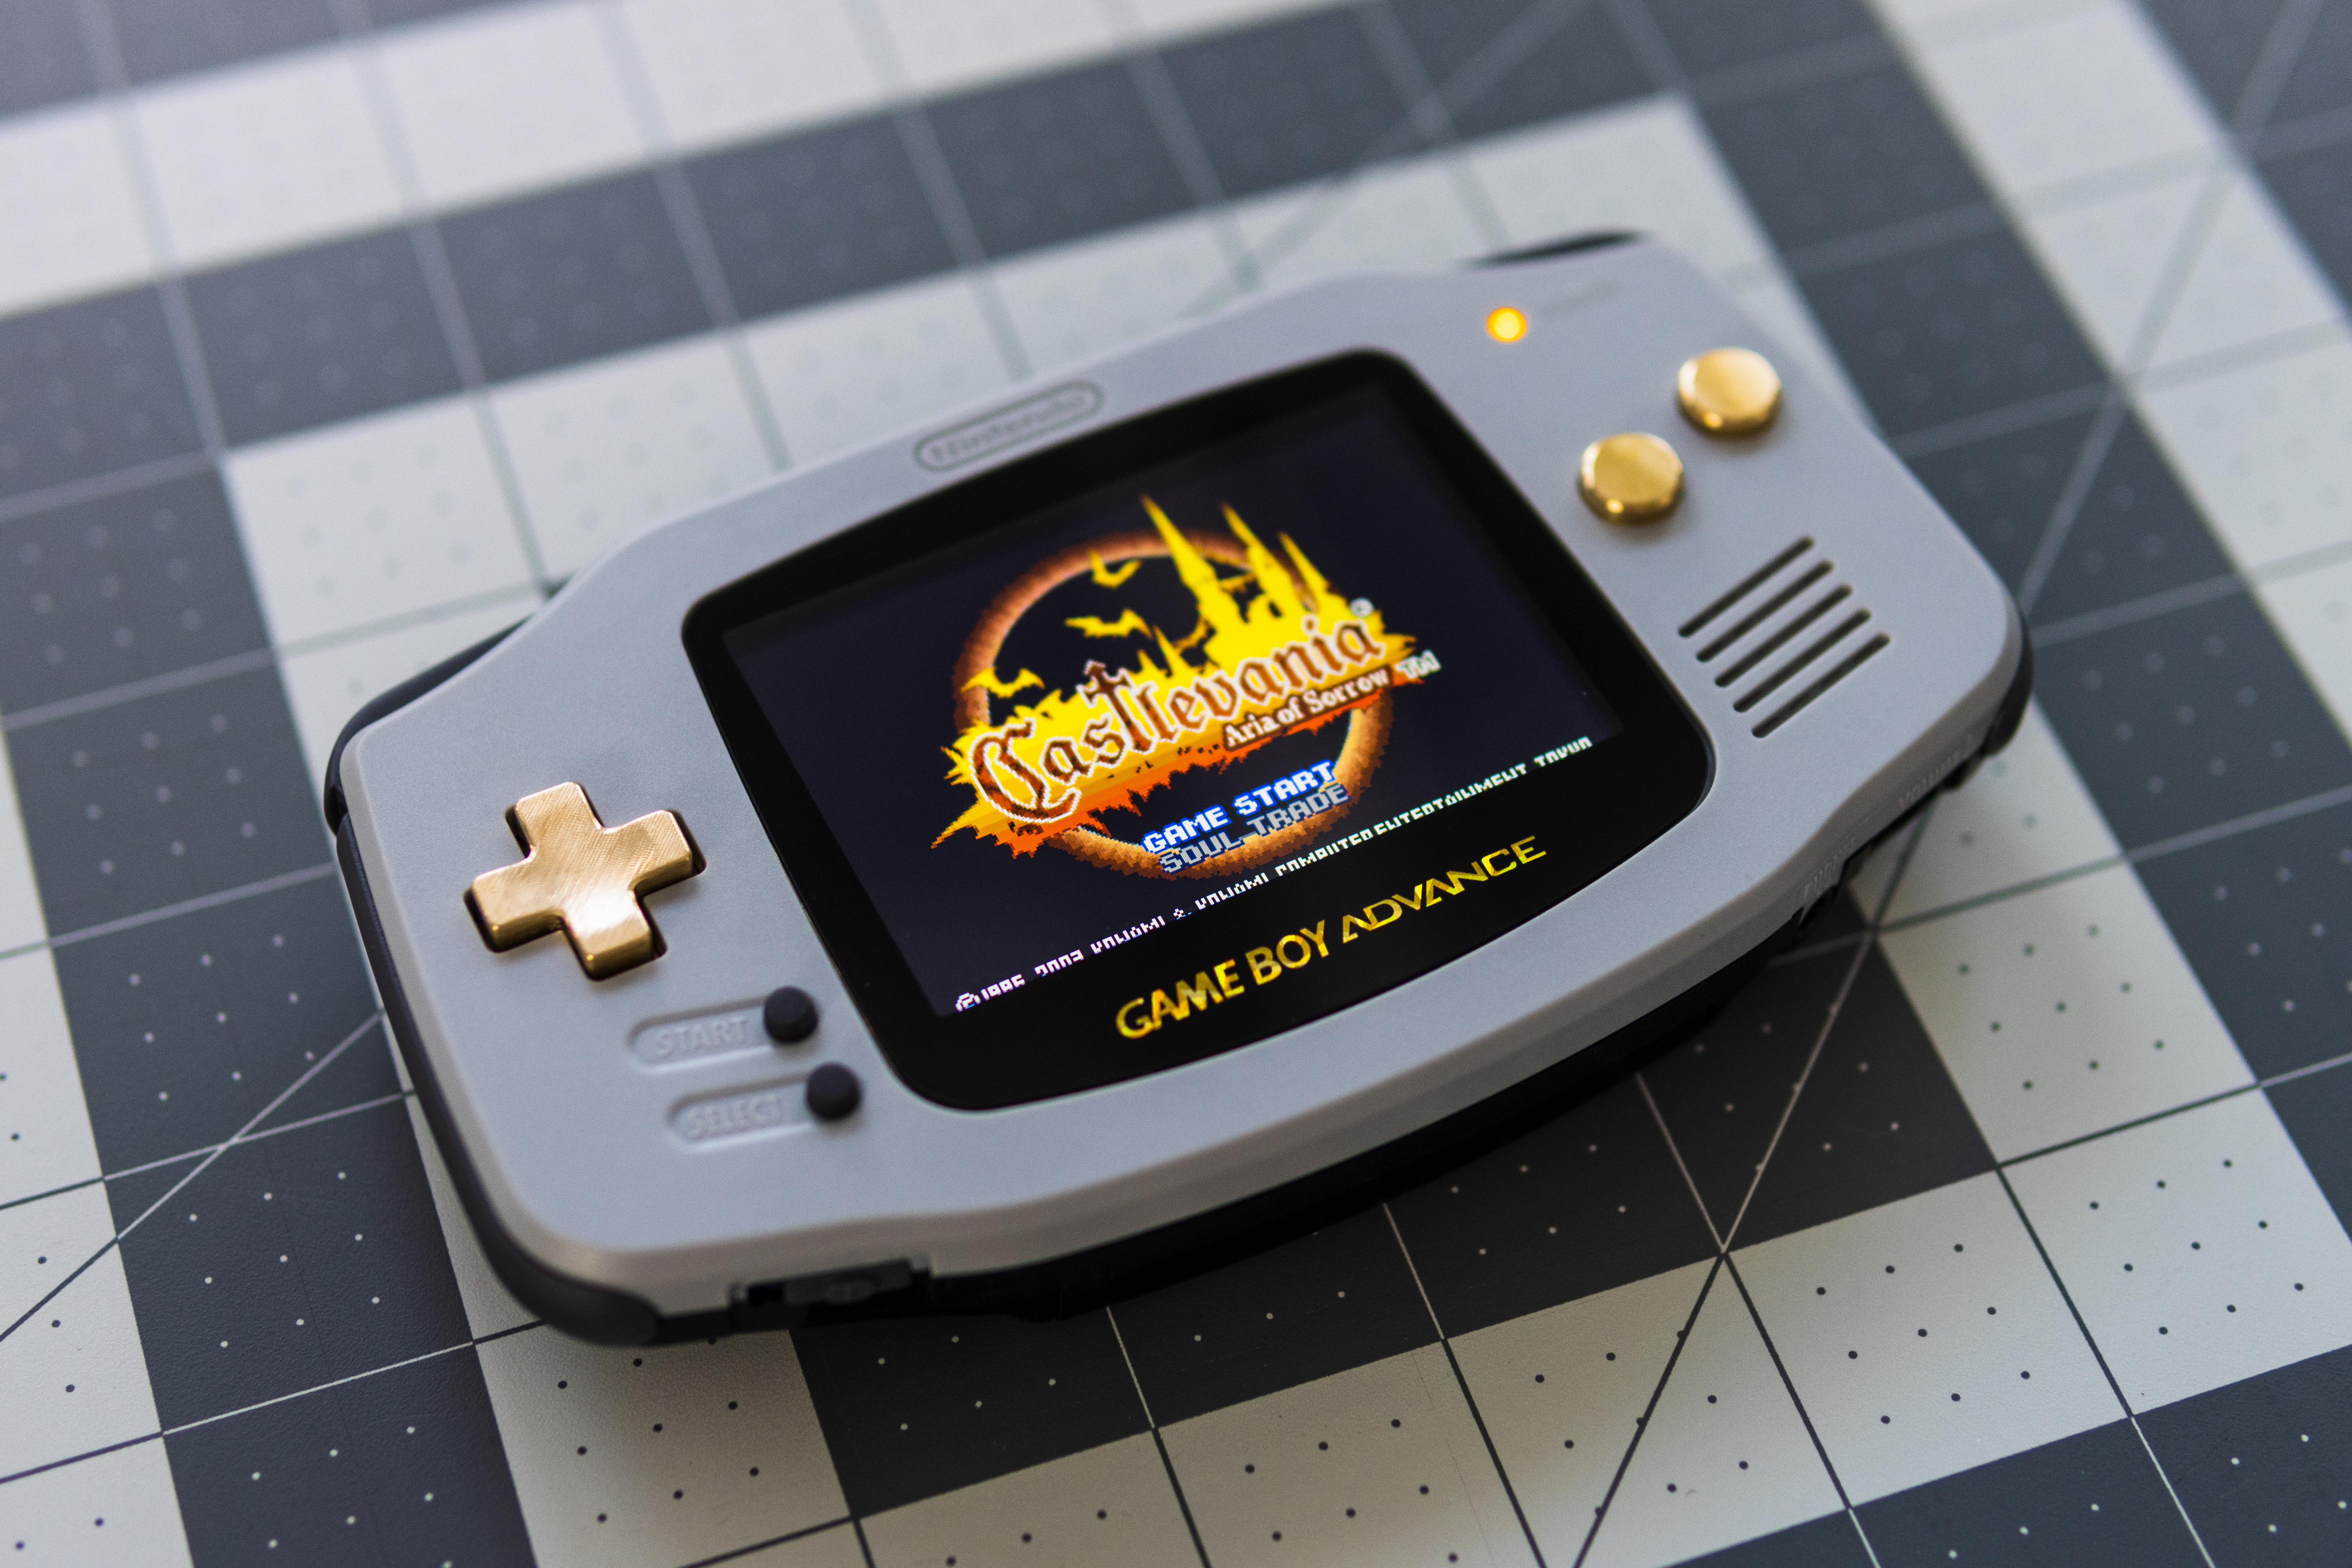 Game Boy Advance, modded in Castlevania colors